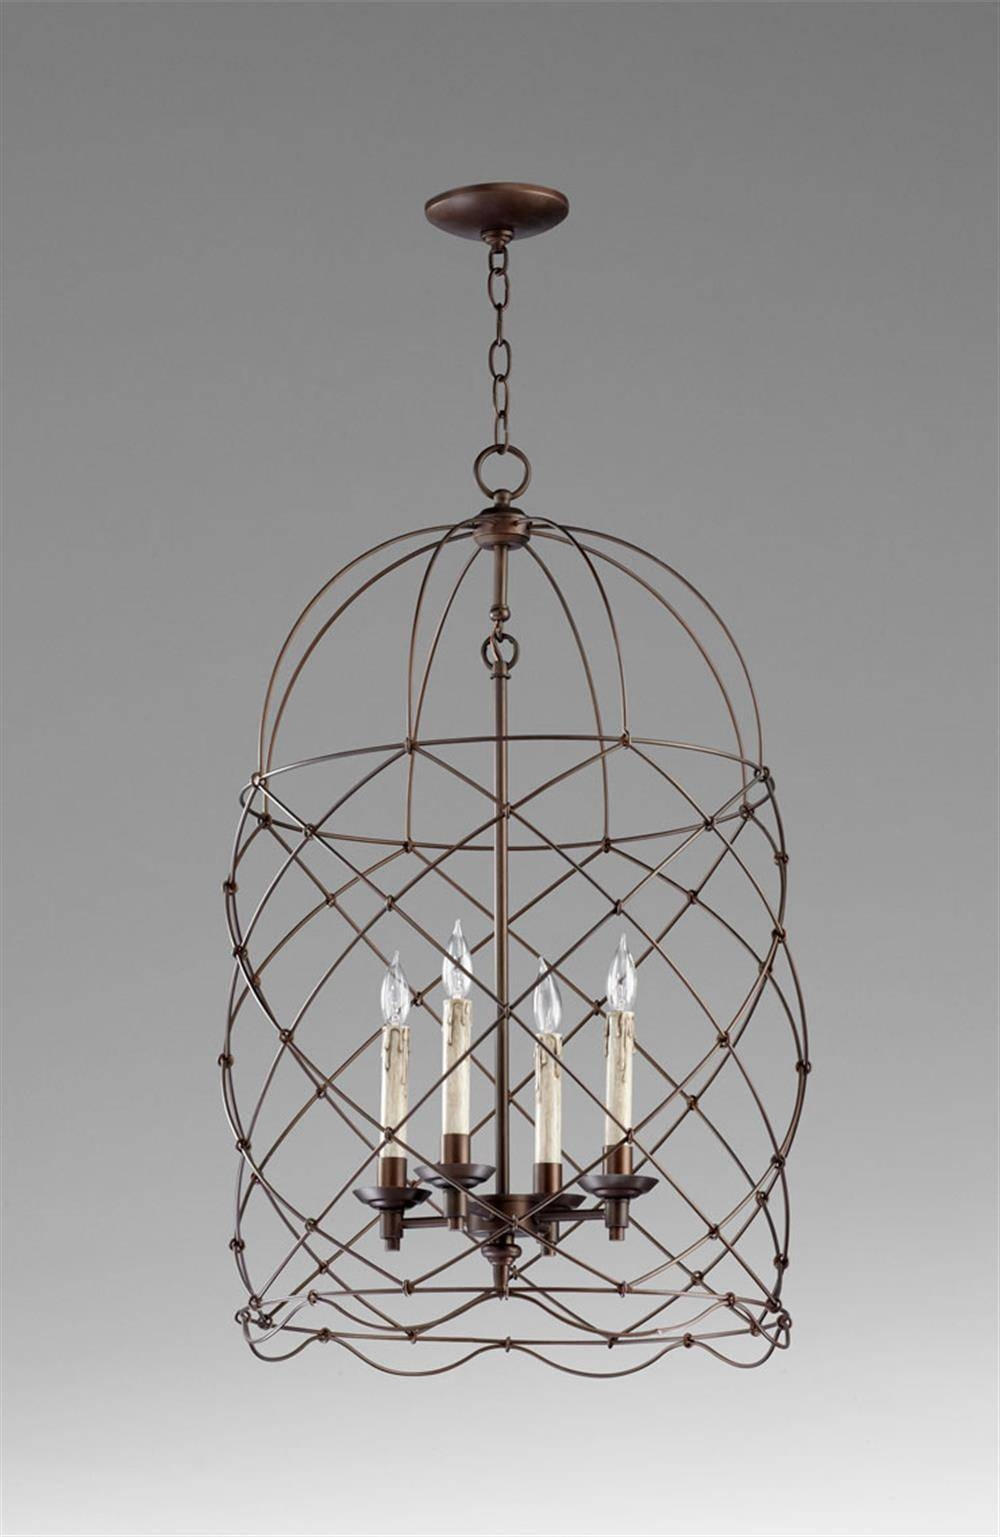 Adele Oil Rubbed Bronze Four Light Bird Cage Chandelier   Kathy intended for Birdcage Lighting Chandeliers (Image 1 of 15)